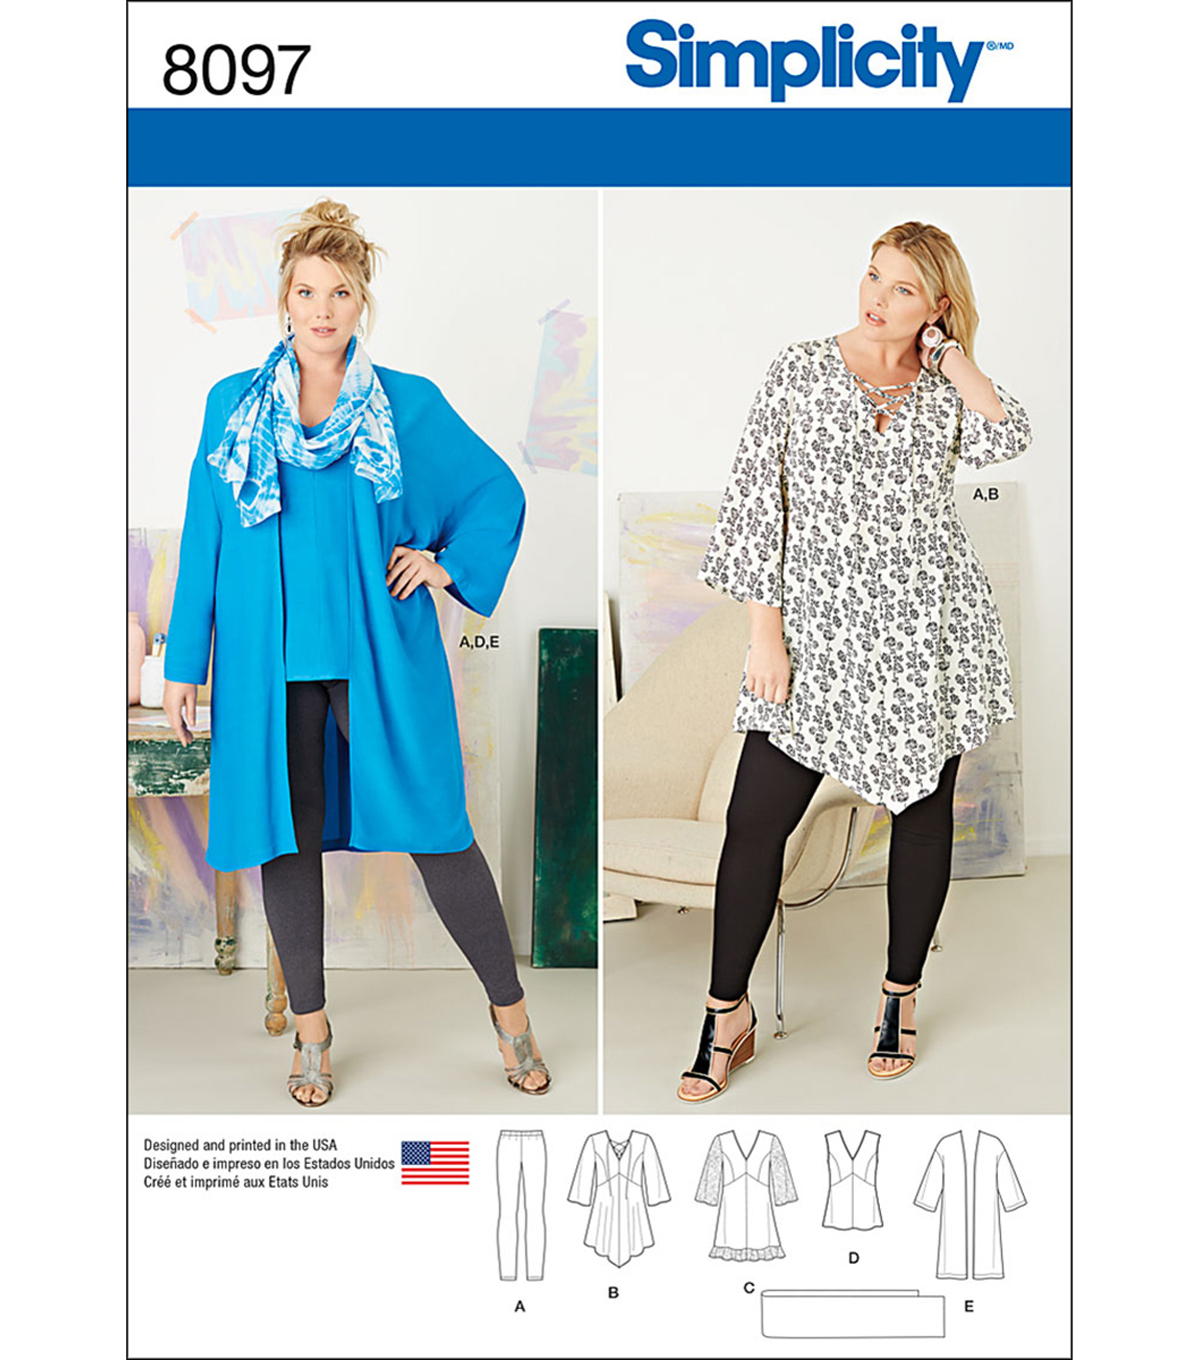 Simplicity Patterns US8097Gg PlUS Sizes-26W-28W-30W-32W